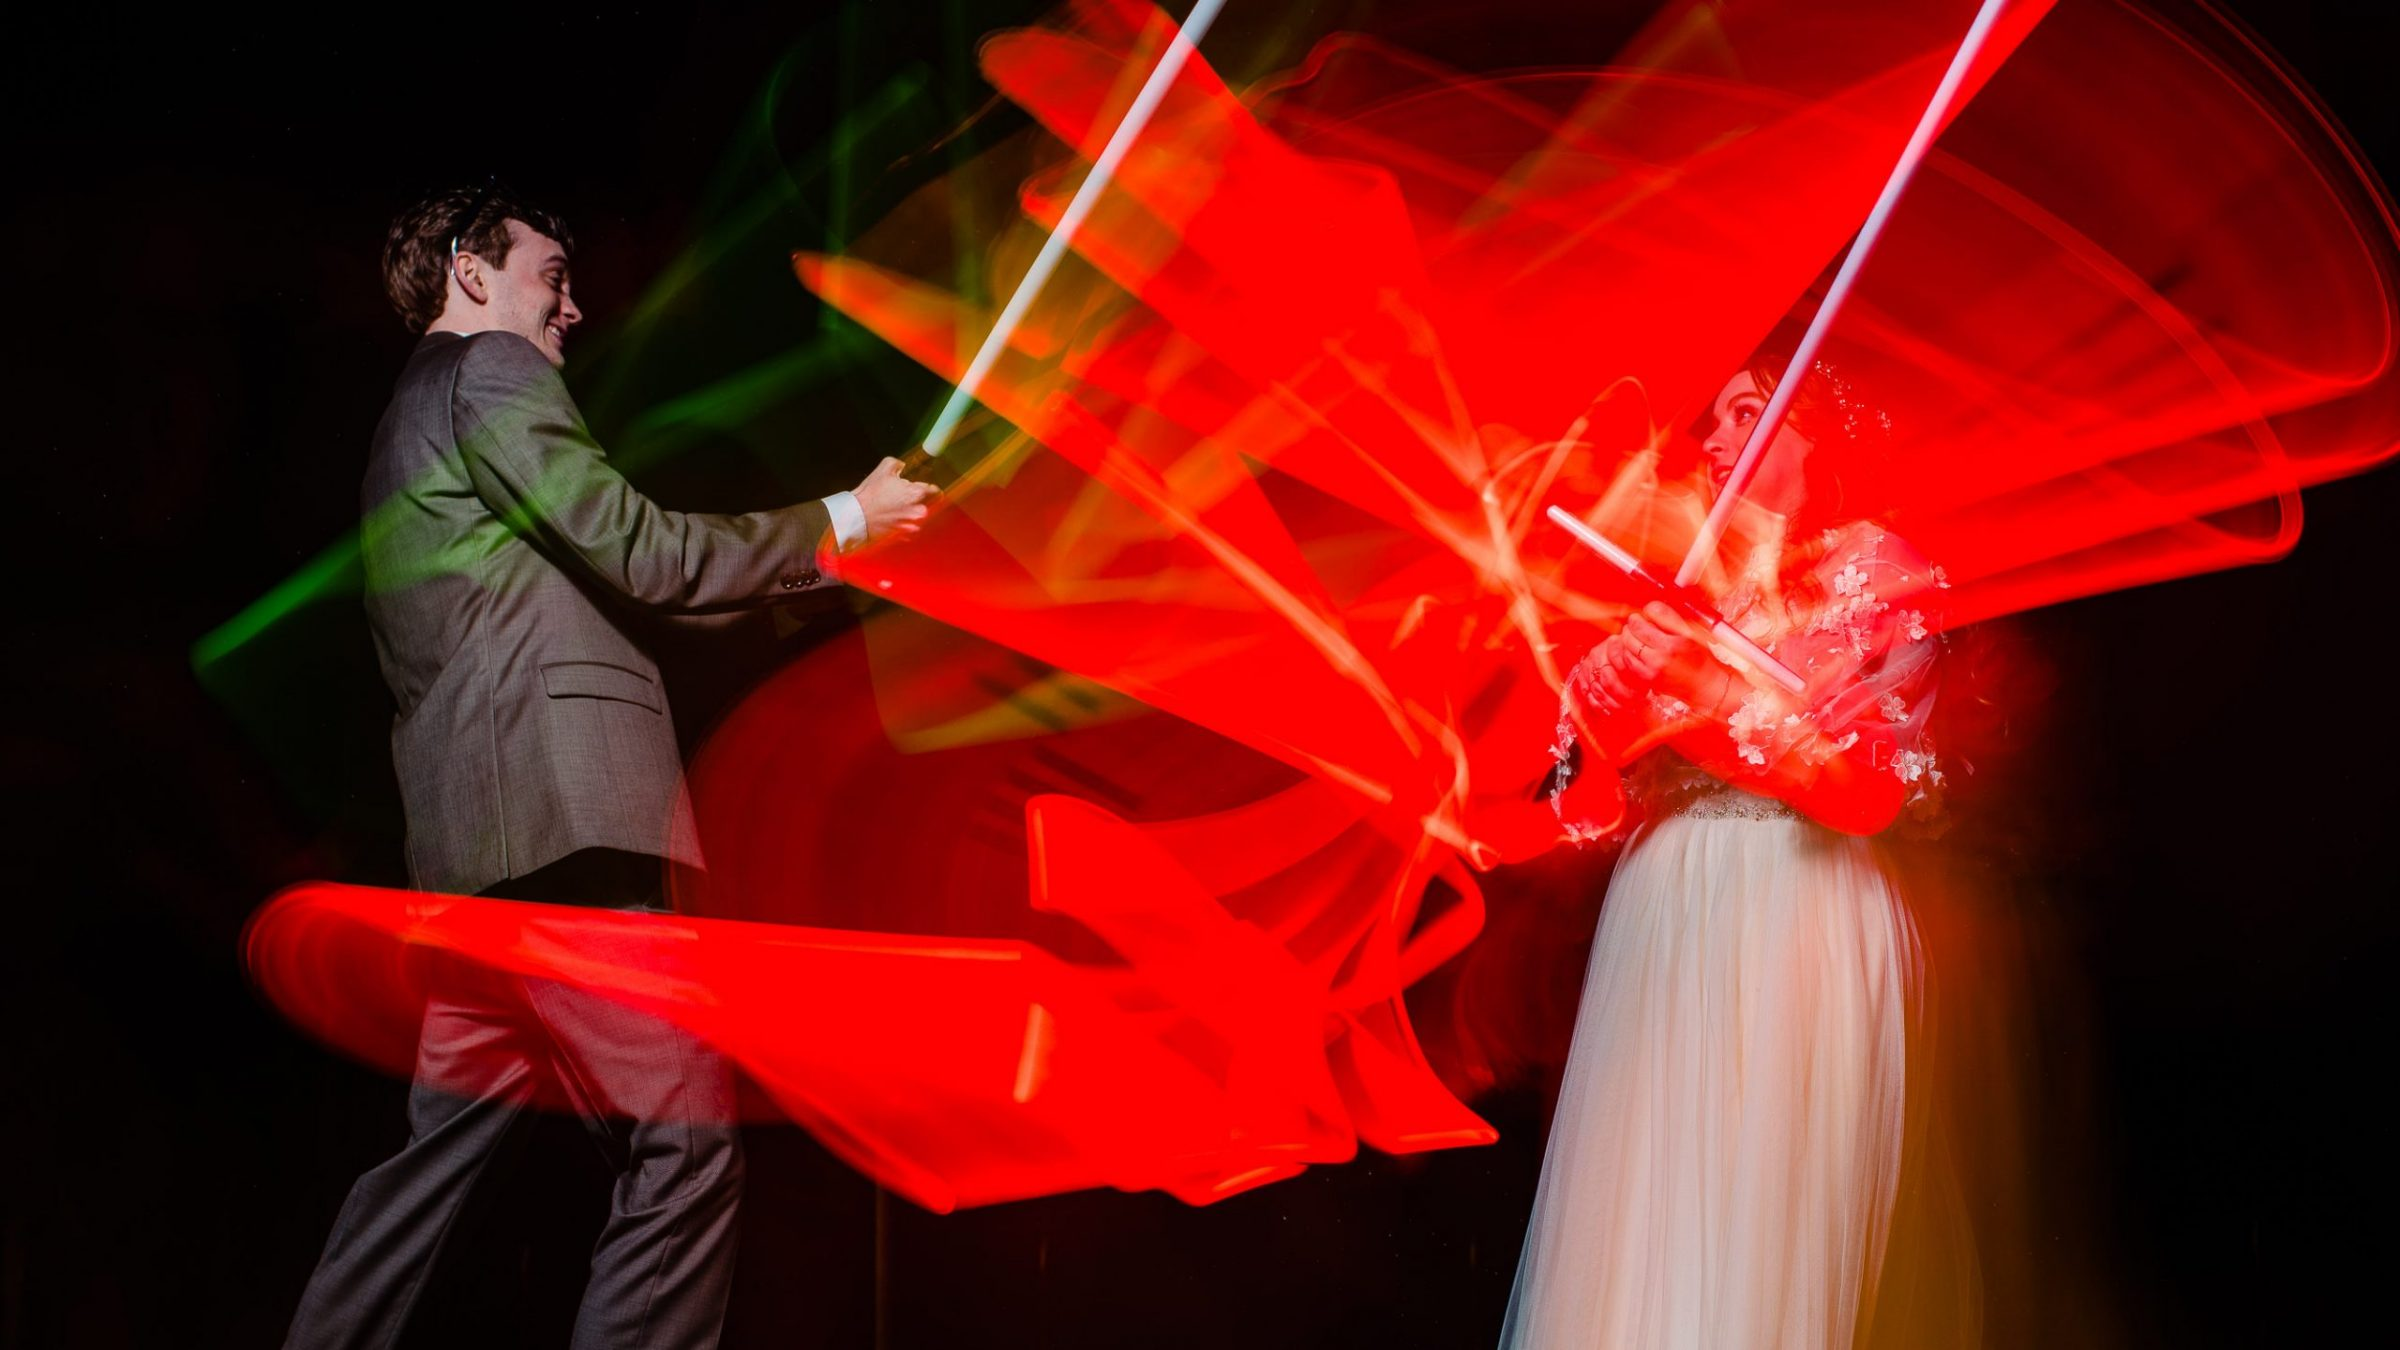 star wars wedding light saber battle